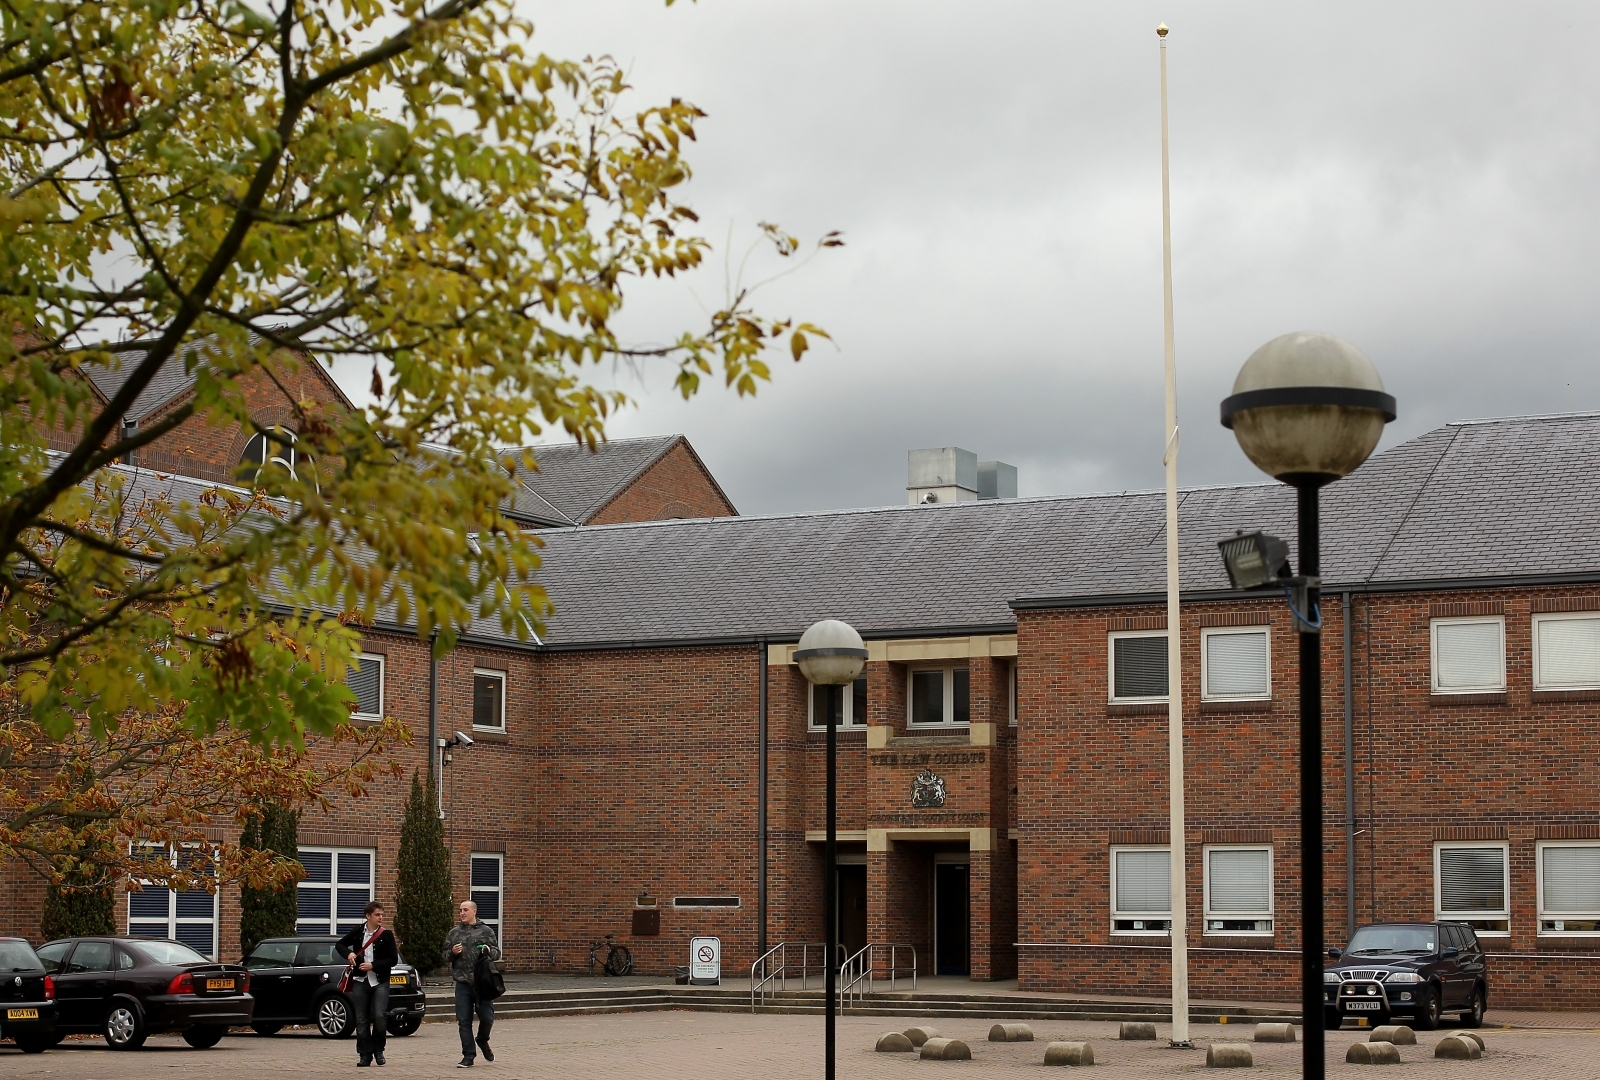 Norwich Crown Court where Katie Ringer was convicted of making threats to parents whose babies she posted images of on social media claiming they were ill or dead in an online scam